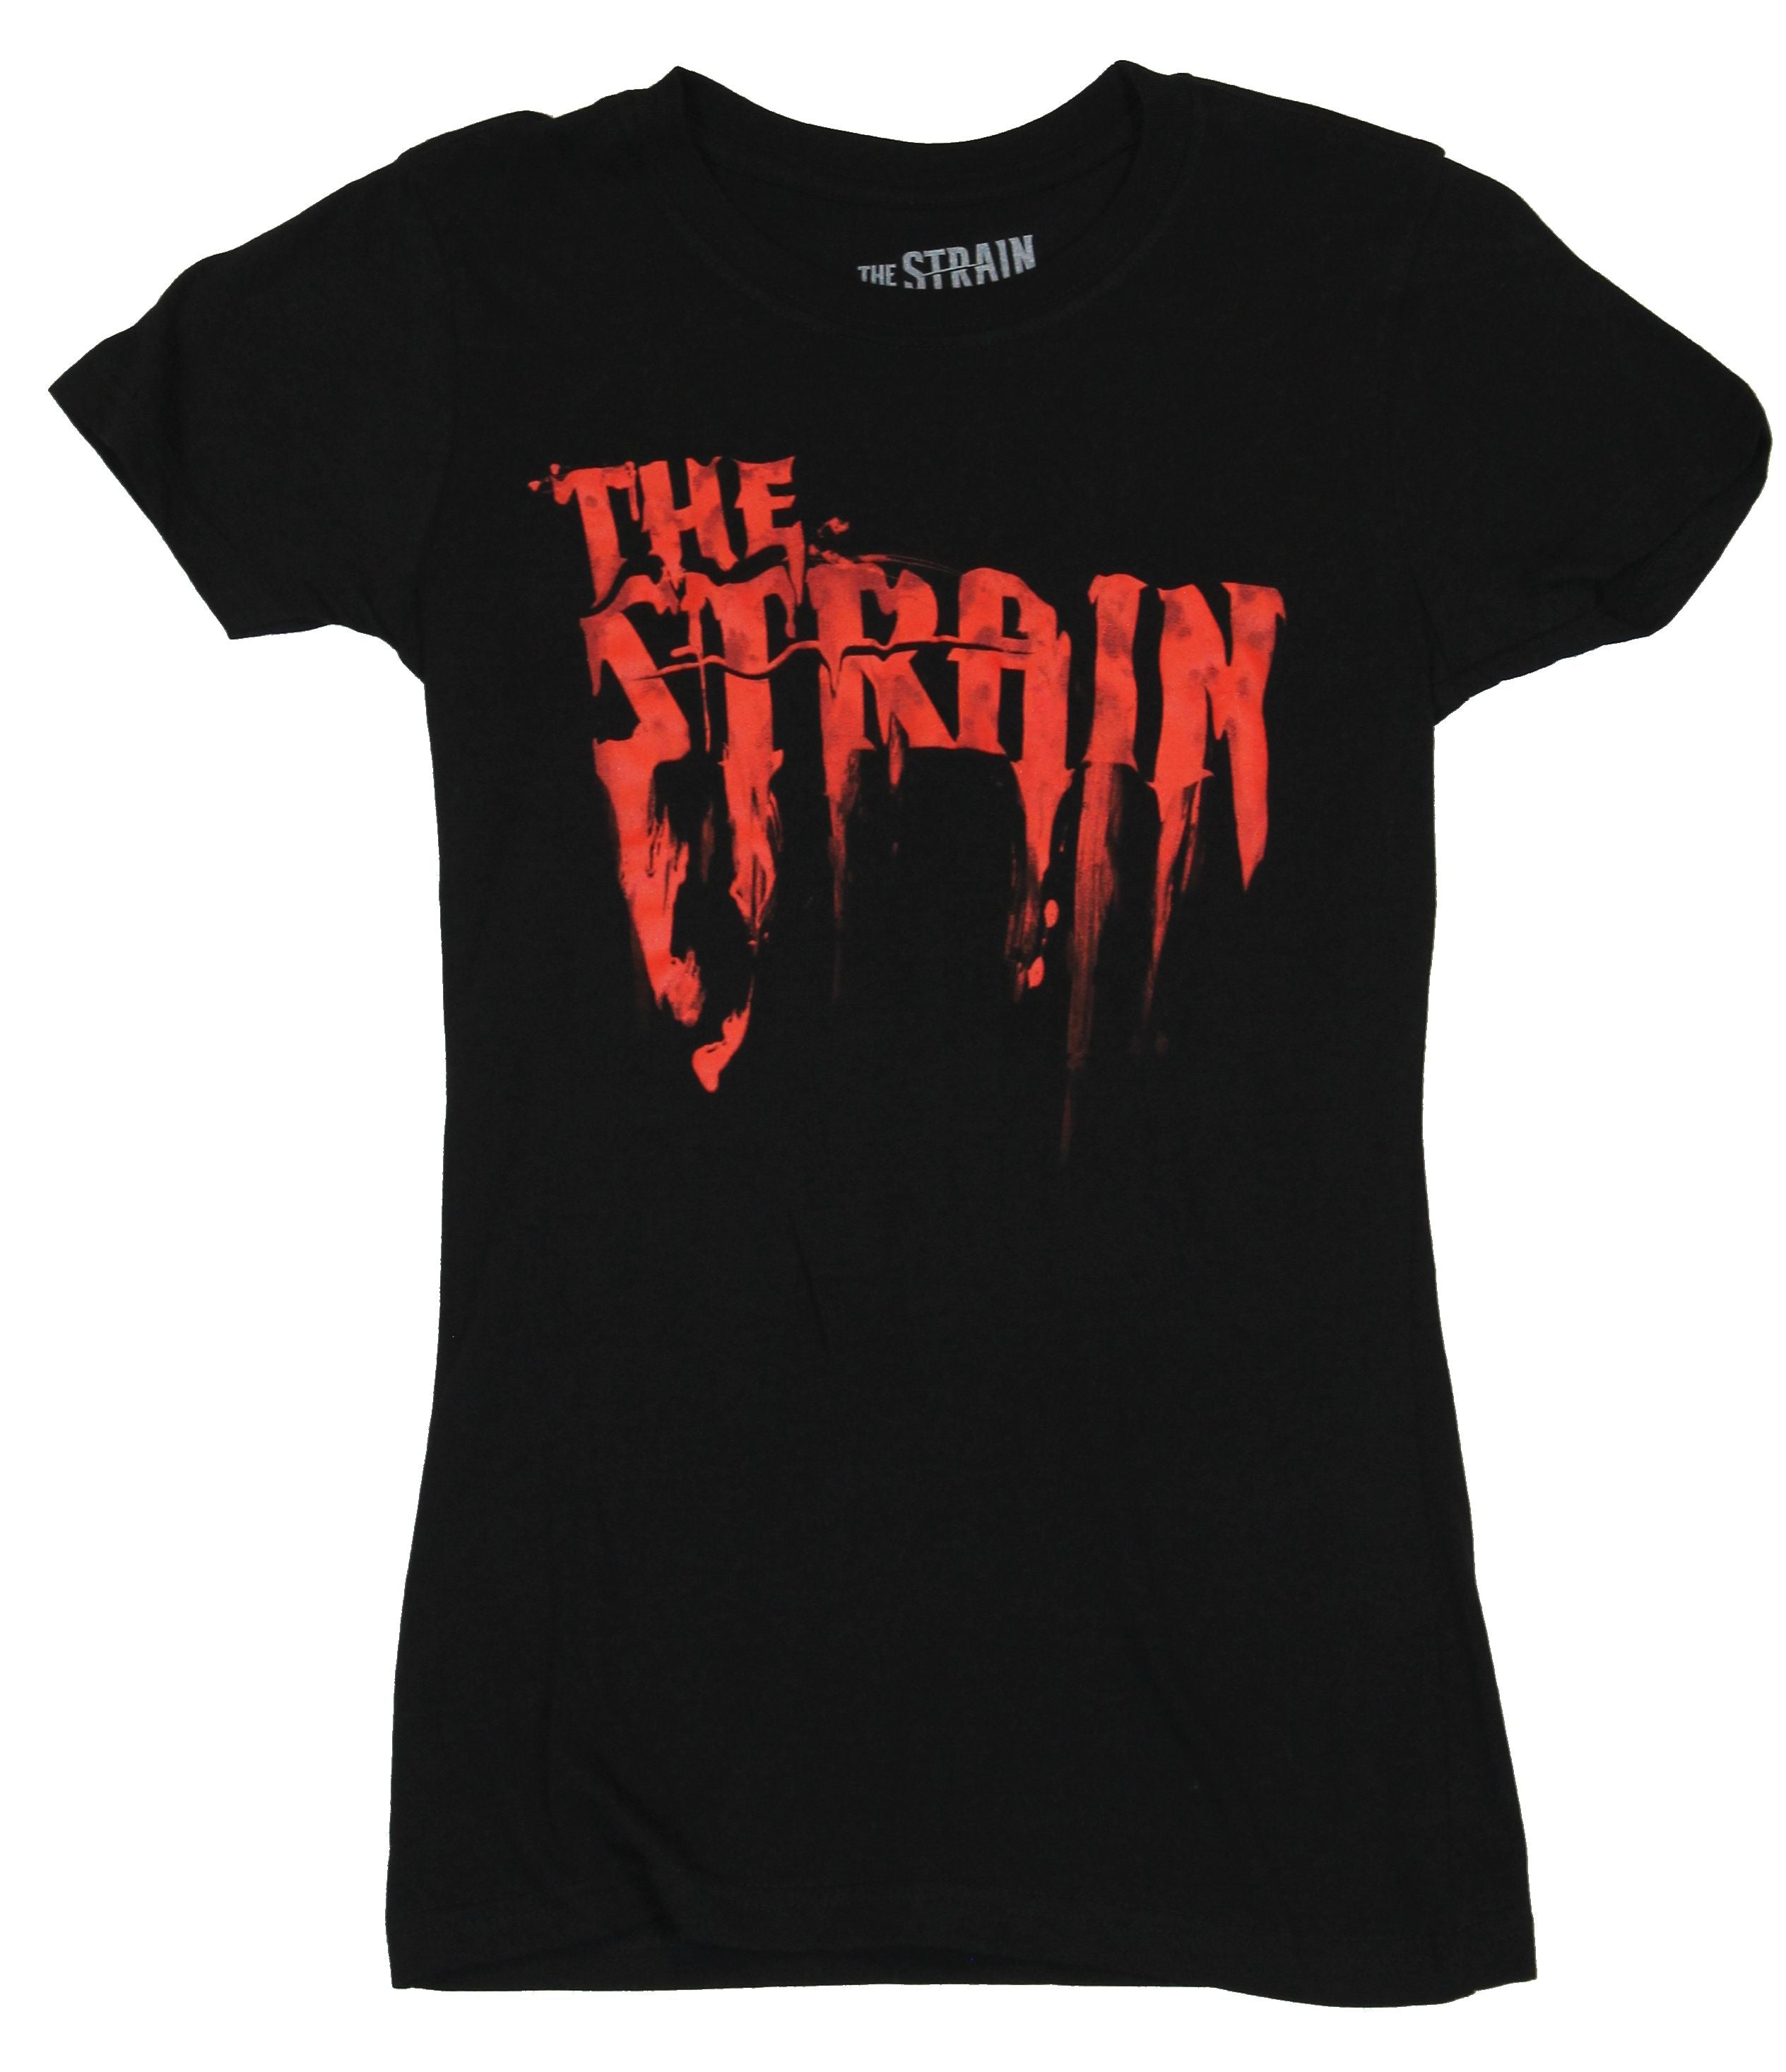 The Strain Girls Juniors T-Shirt - Dripping Red Title Screen Logo Image